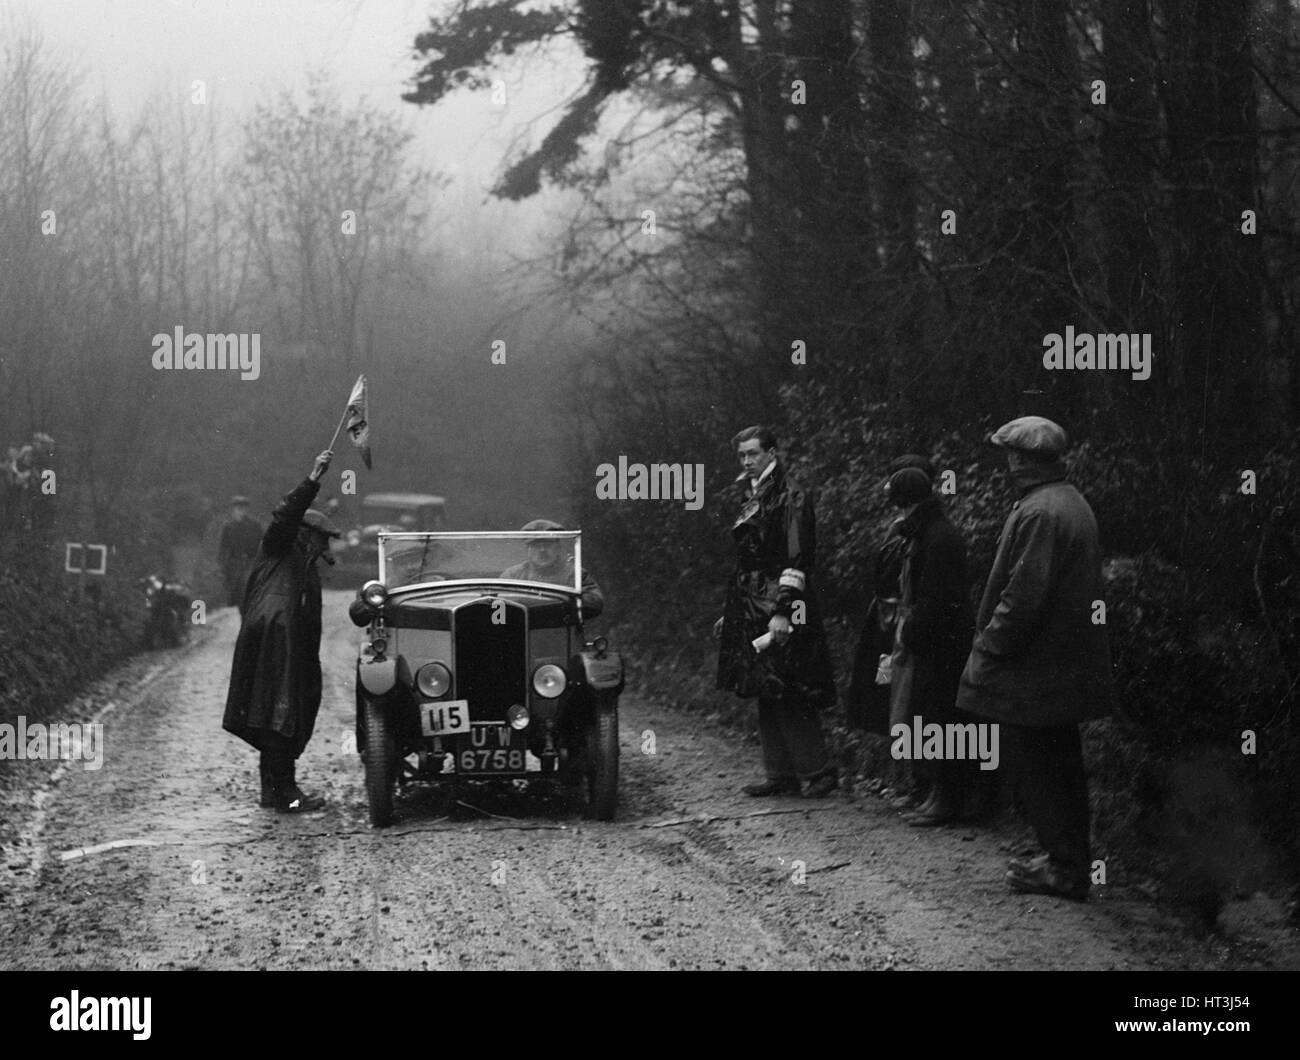 Triumph of J Wallis competing in the MCC Exeter Trial, 1930. Artist: Bill Brunell. - Stock Image